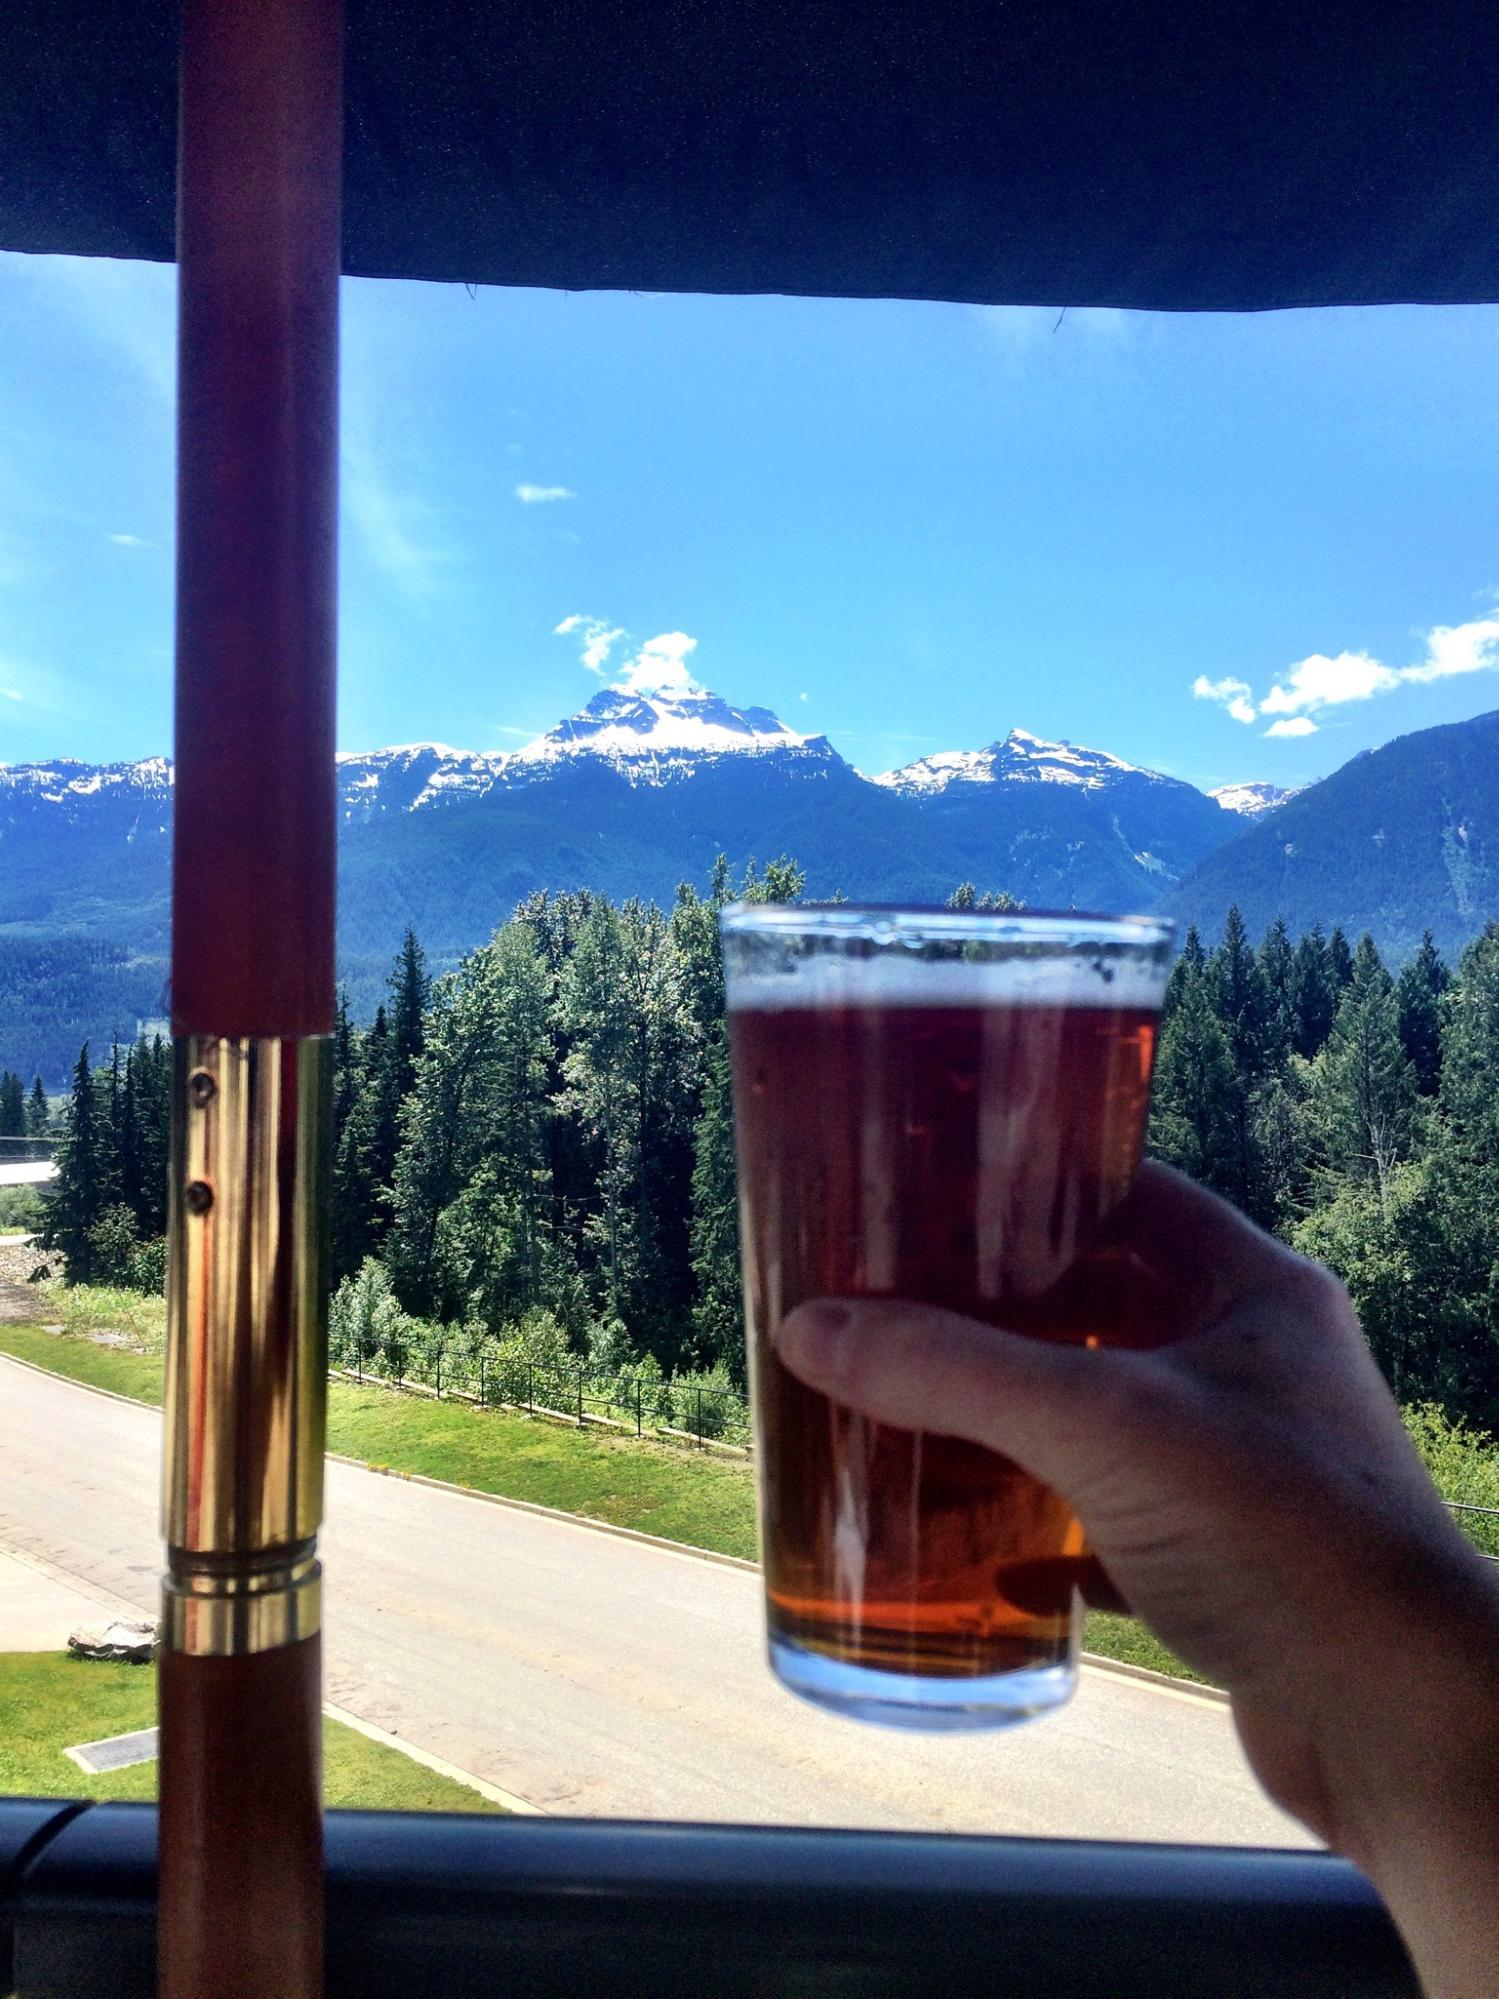 A hand holds up a full pint glass in front of a mountainous landscape.